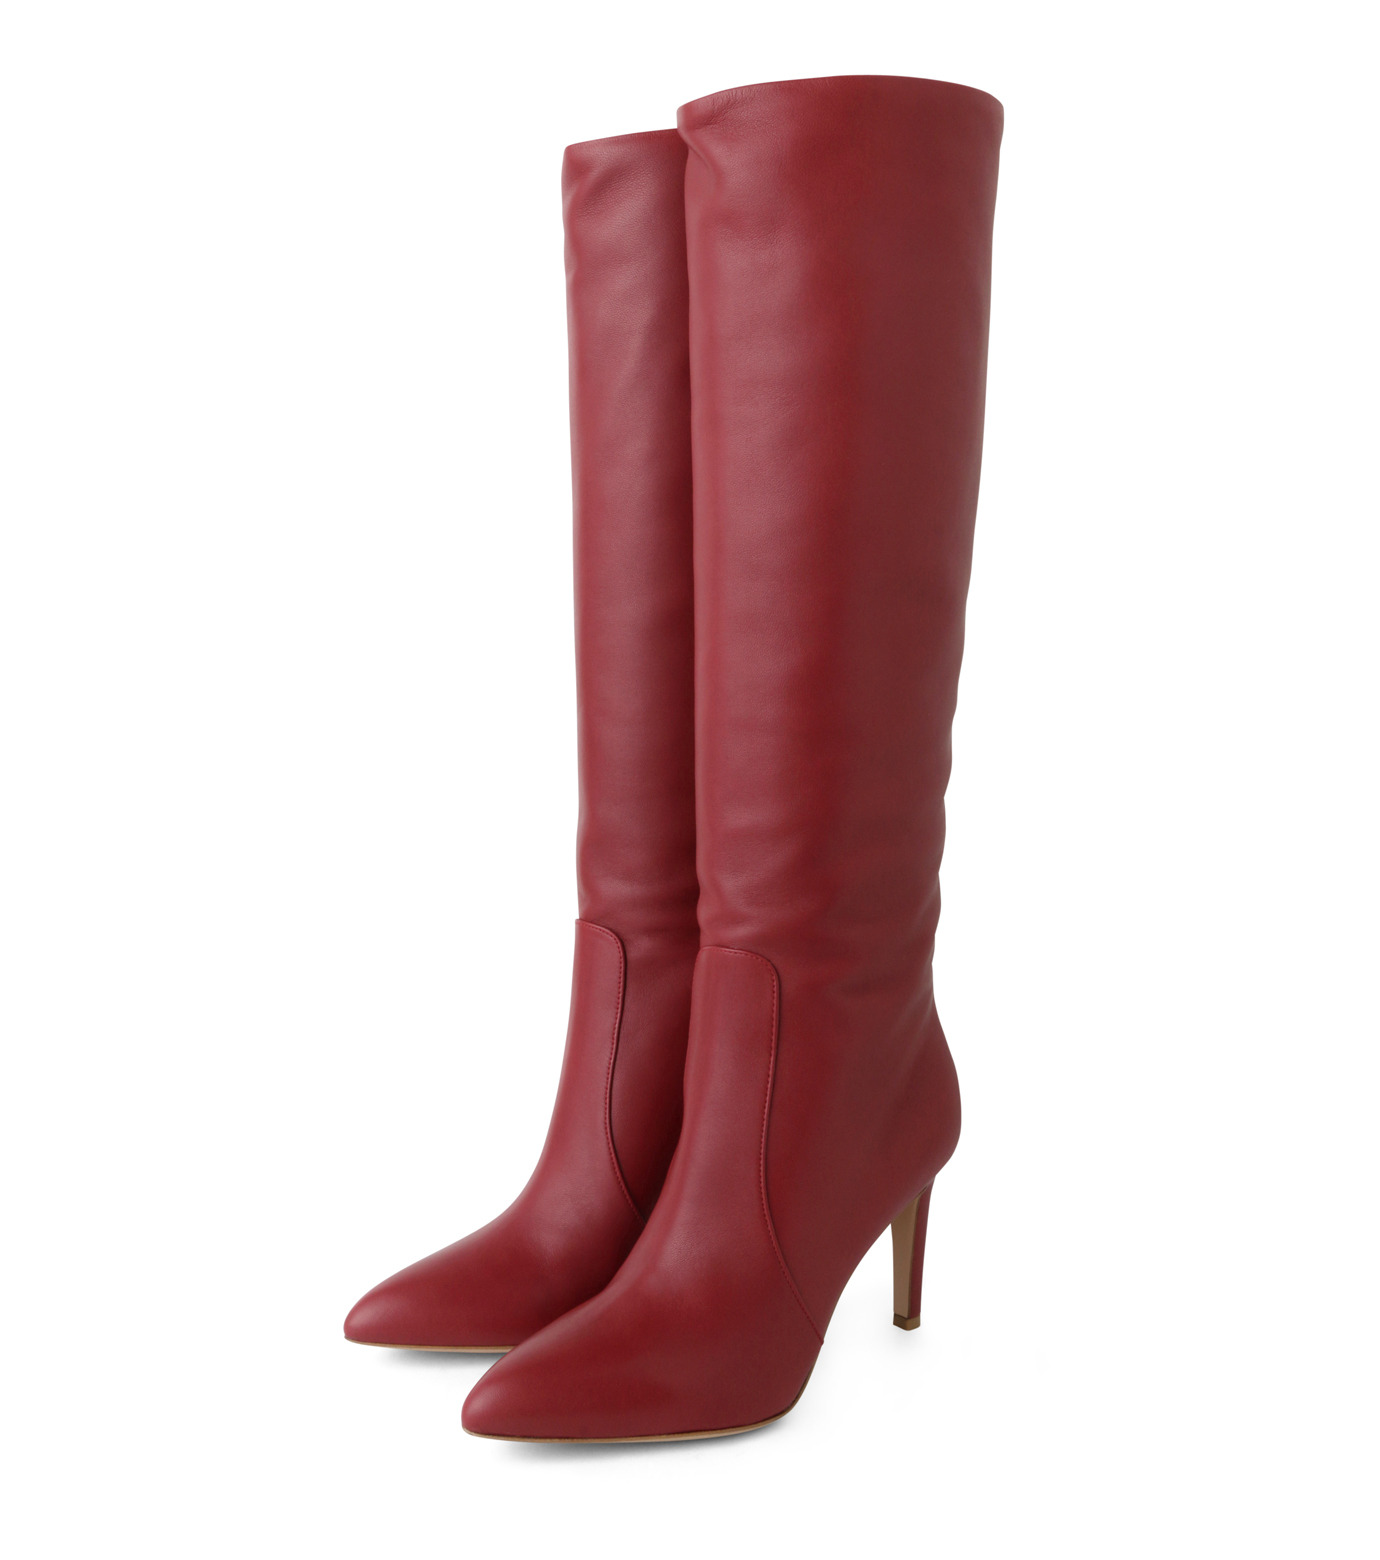 Gianvito Rossi(ジャンヴィト ロッシ)のSlouchy Boots-RED(ブーツ/boots)-80835-62 拡大詳細画像3